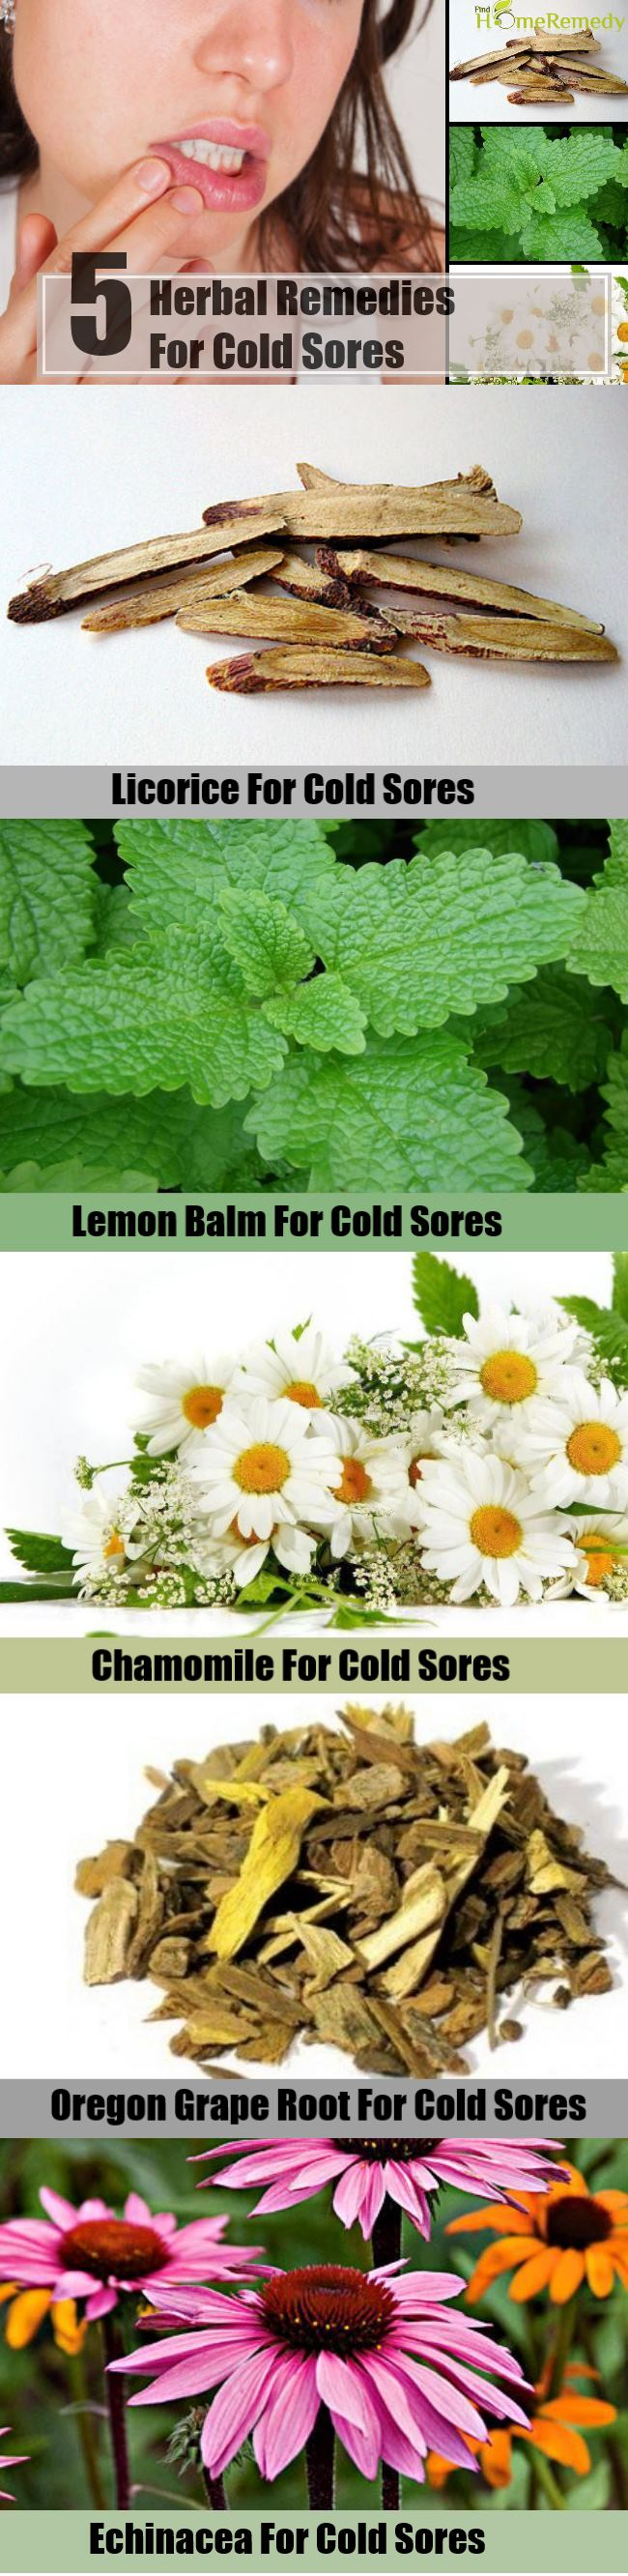 5 Herbal Remedies For Cold Sores